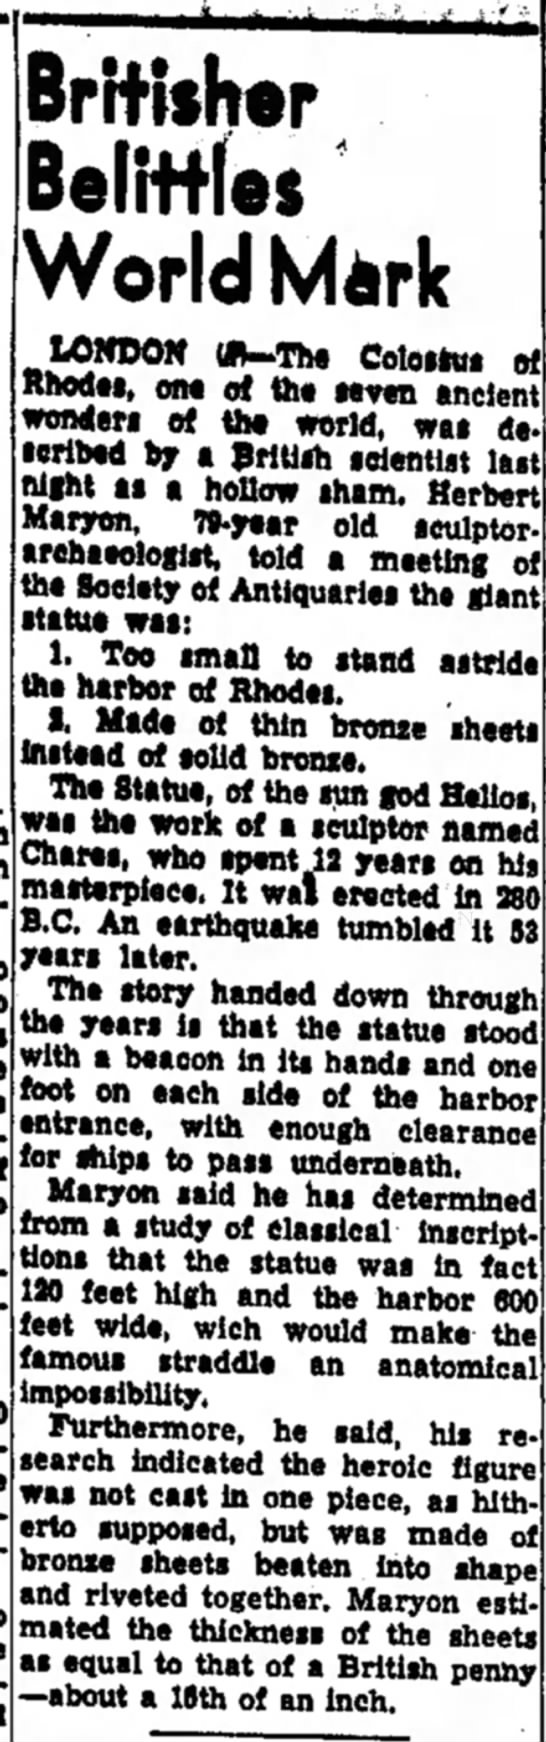 Herbert Maryon on the Colossus of Rhodes, The Indiana Gazette, 5 December 1953 - Britisher Belittles World Mark IOHDON tfWThe...